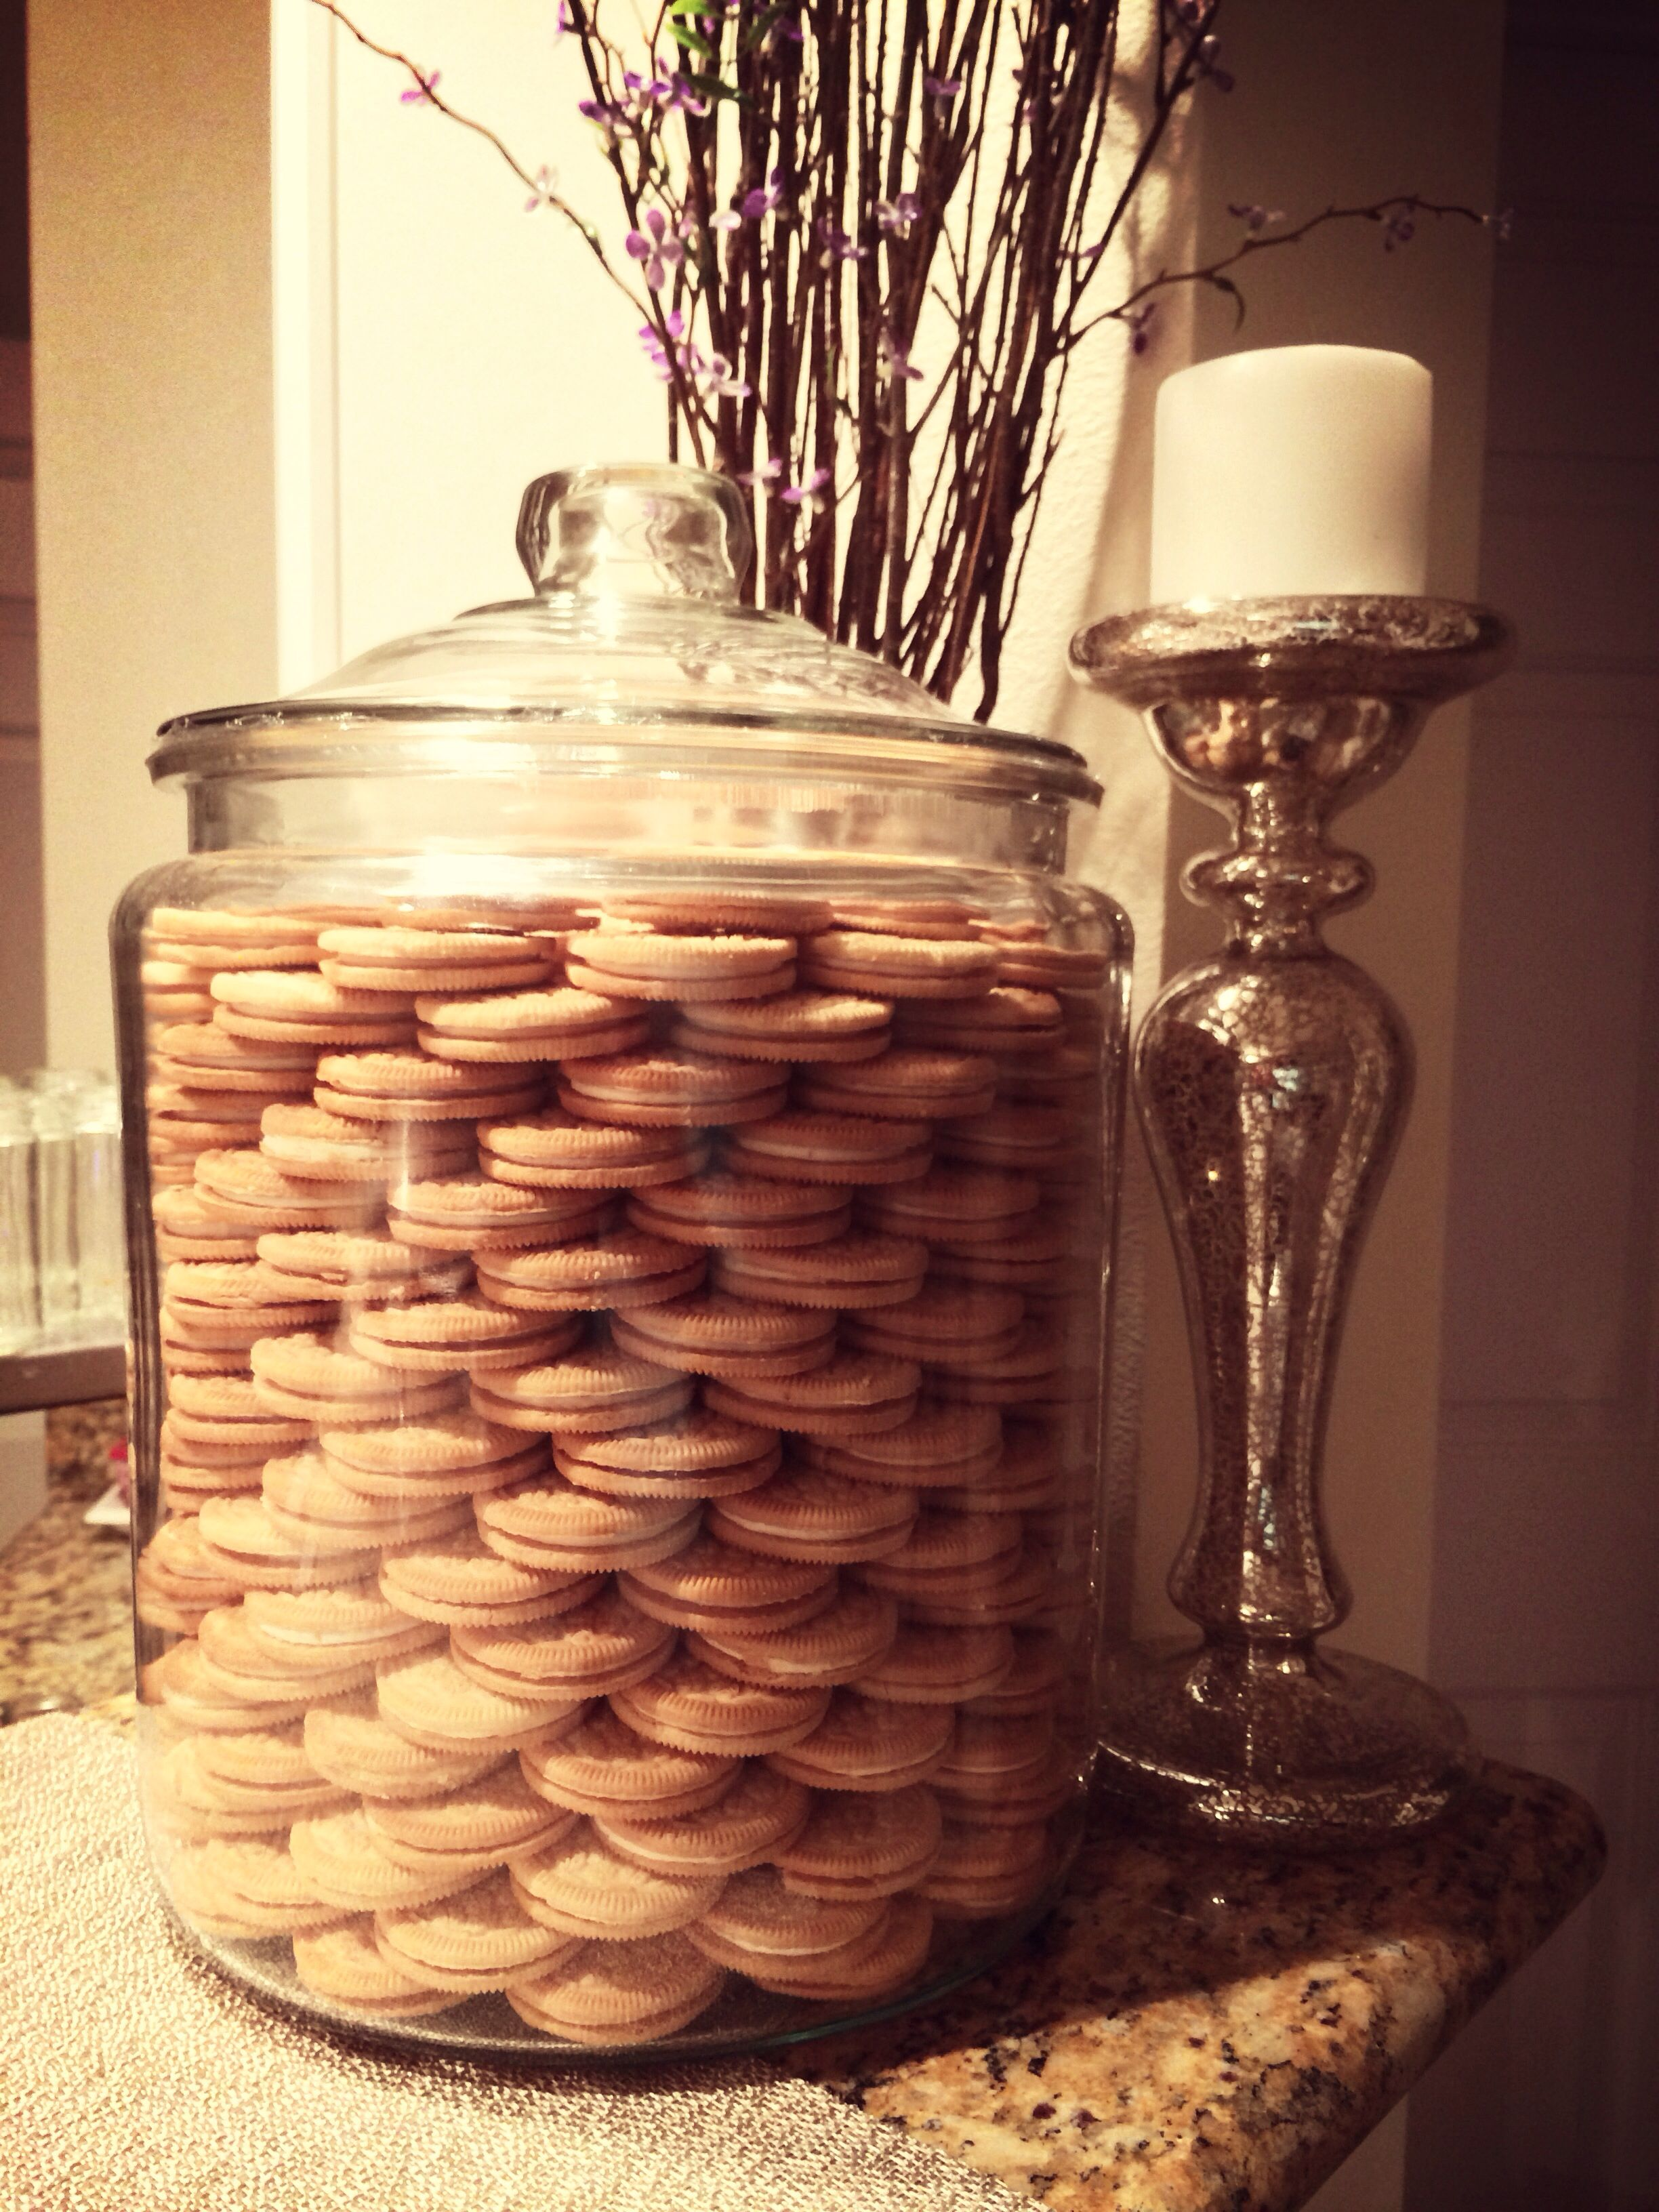 Khloe Kardashian Cookie Jar My Khloe Kardashian Inspired Cookie Jar 3  Pretty Diys  Pinterest